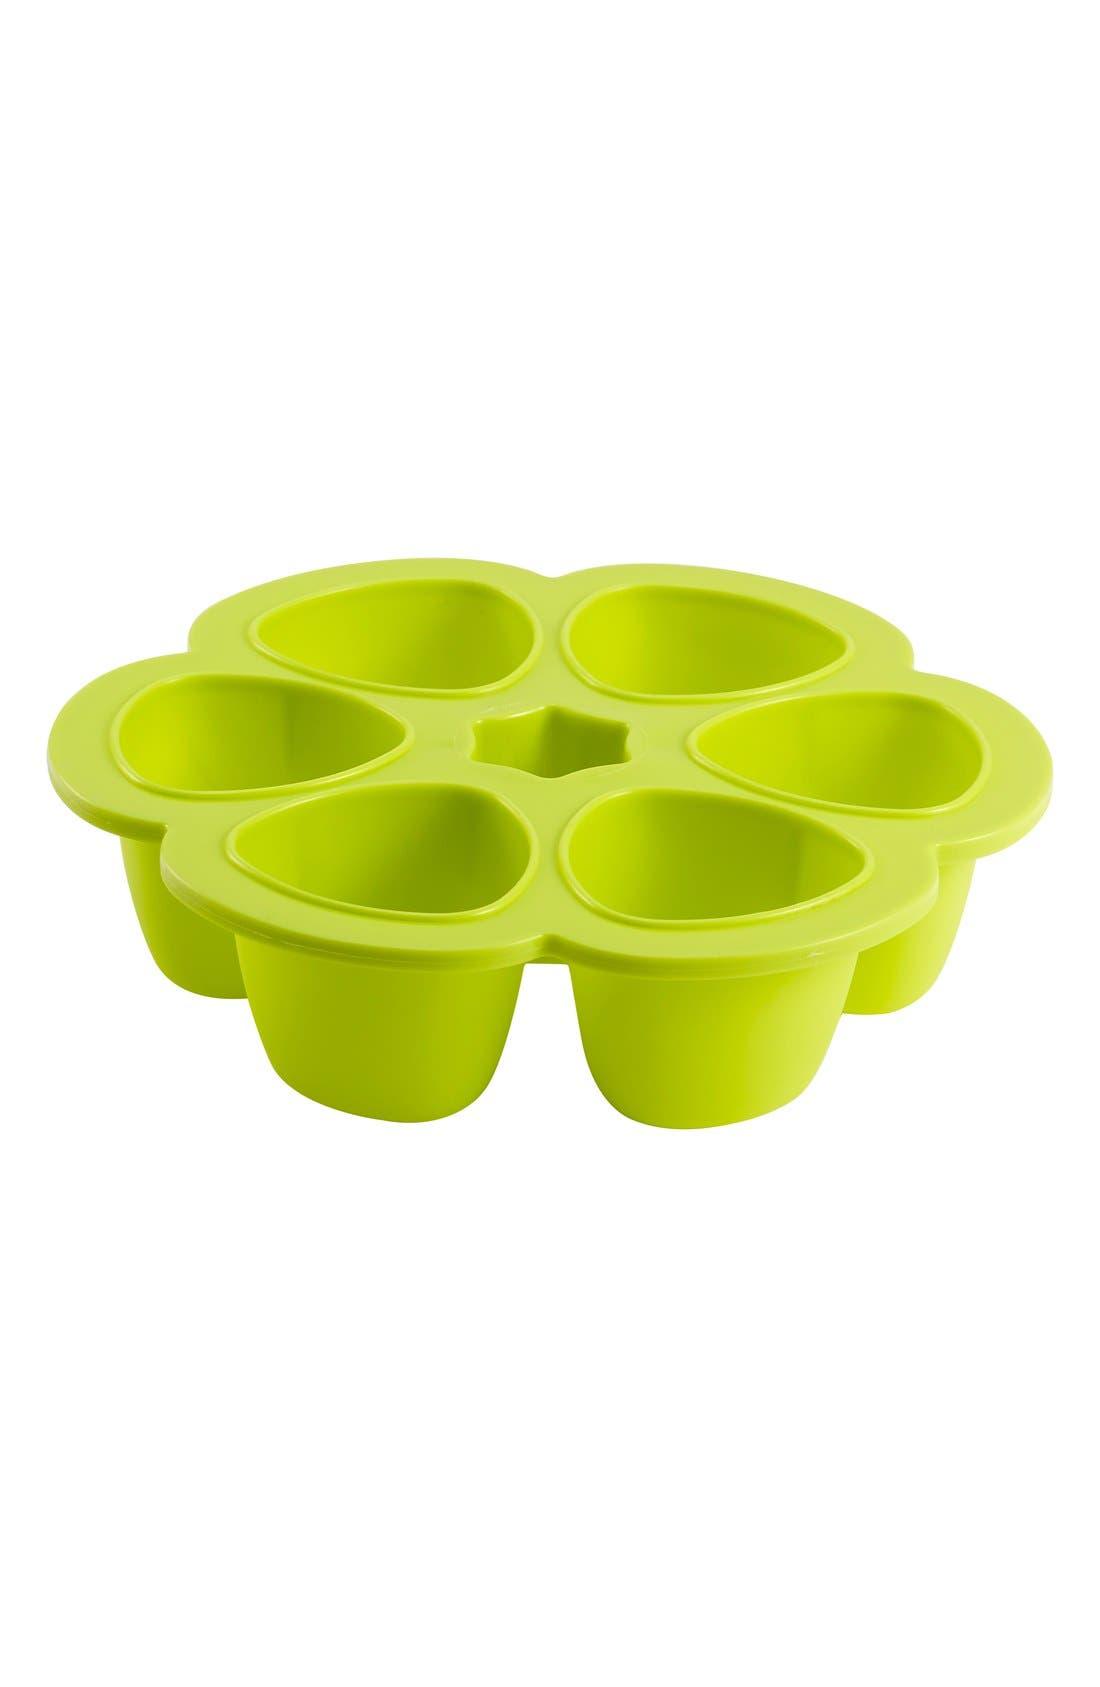 BÉABA 'Multiportions' 3 oz. Food Cup Tray